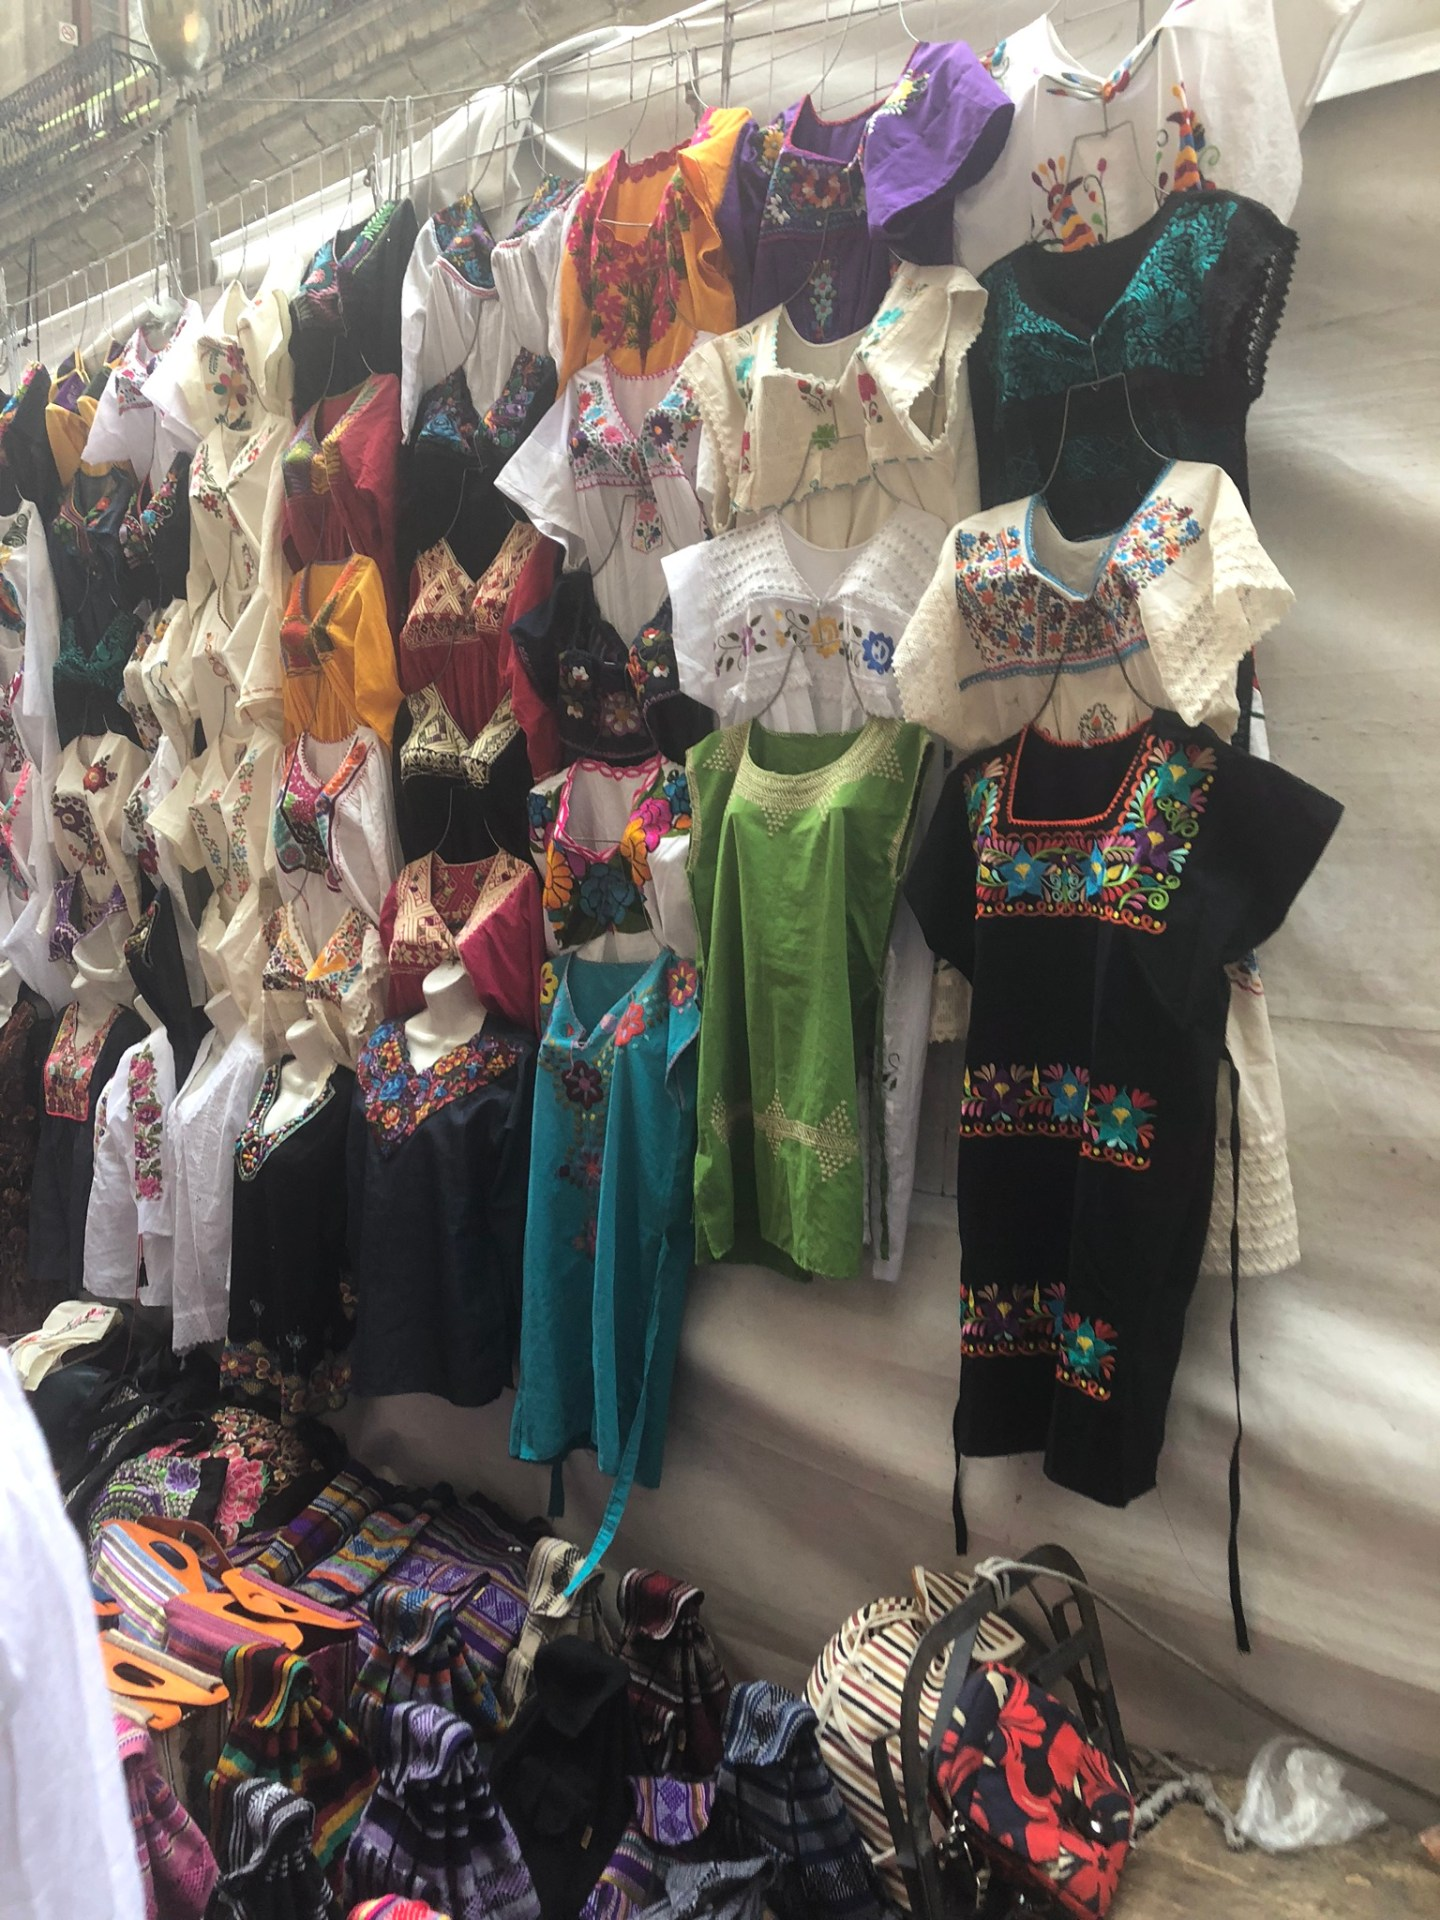 Mayan clothing for sale in Mexico City